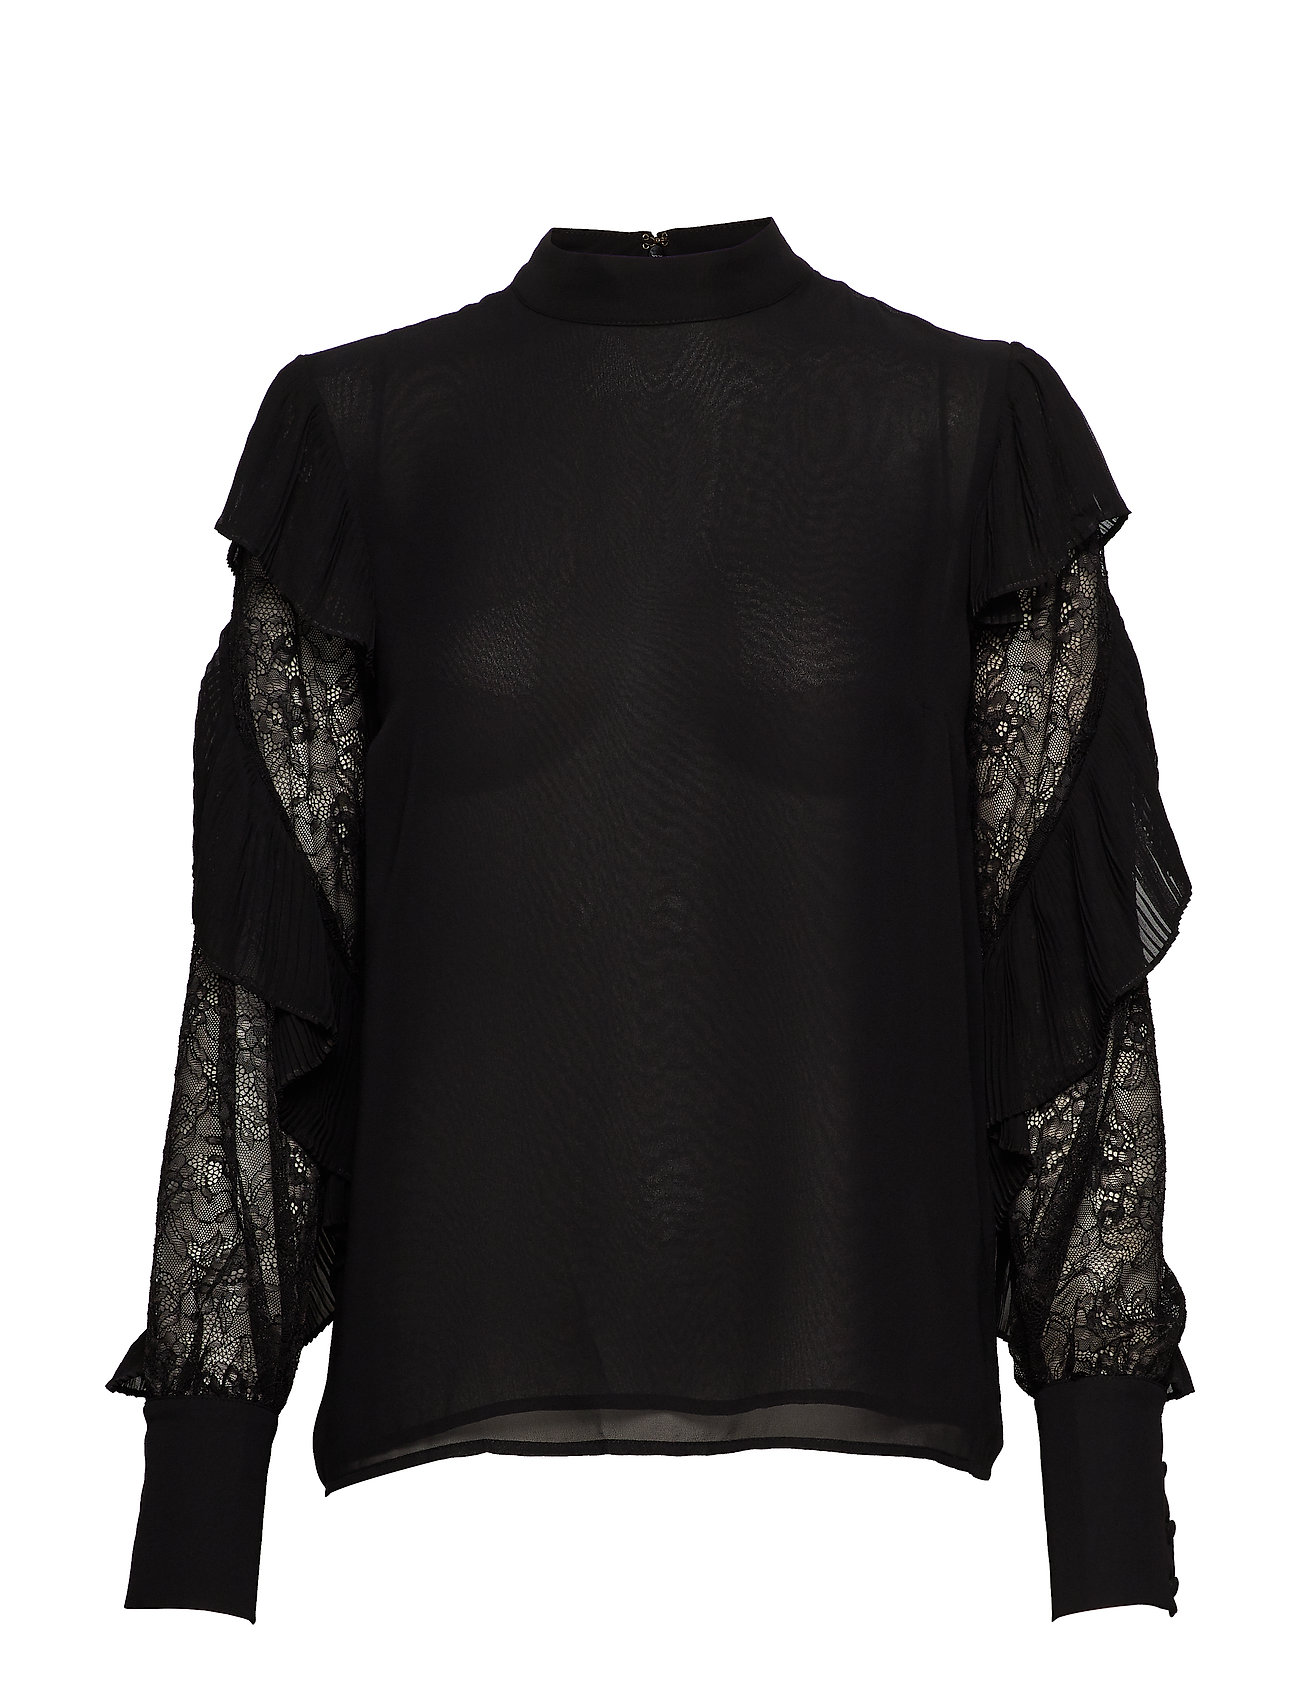 Marciano by GUESS FELL IN LOVE BLOUSE - JET BLACK A996